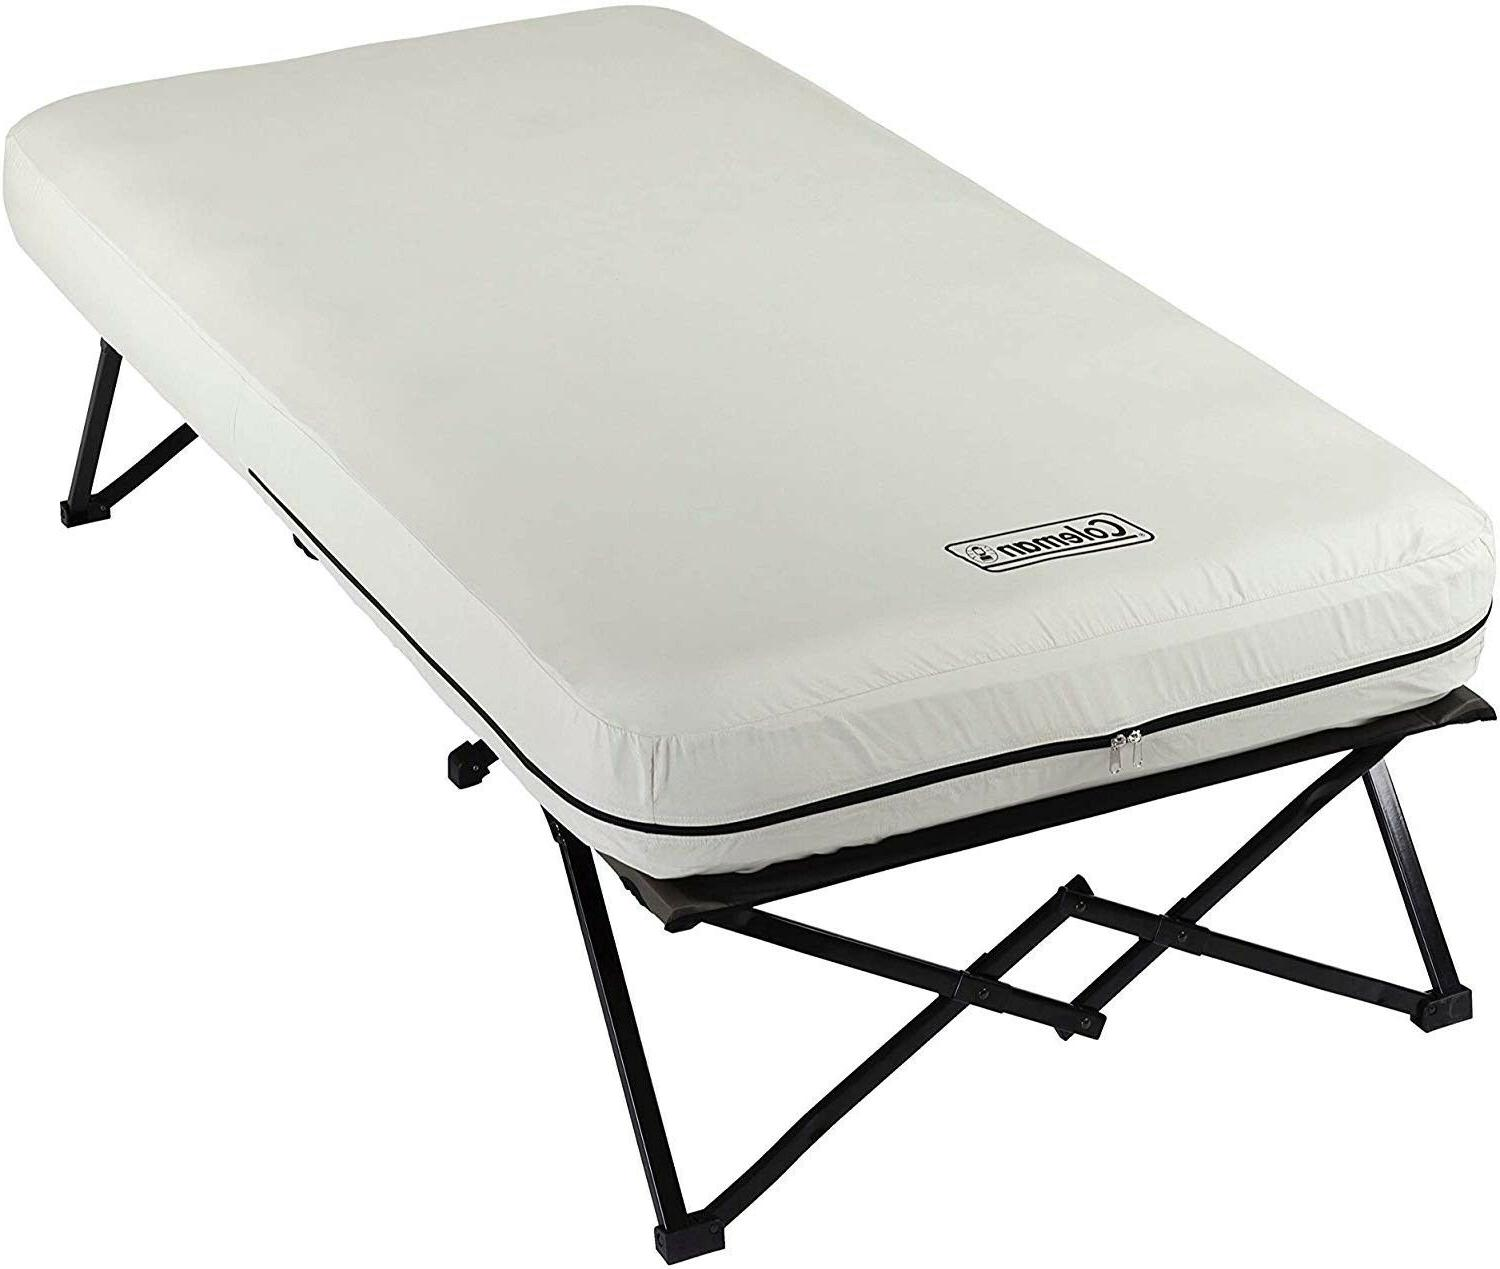 Camping and or Coleman Folding